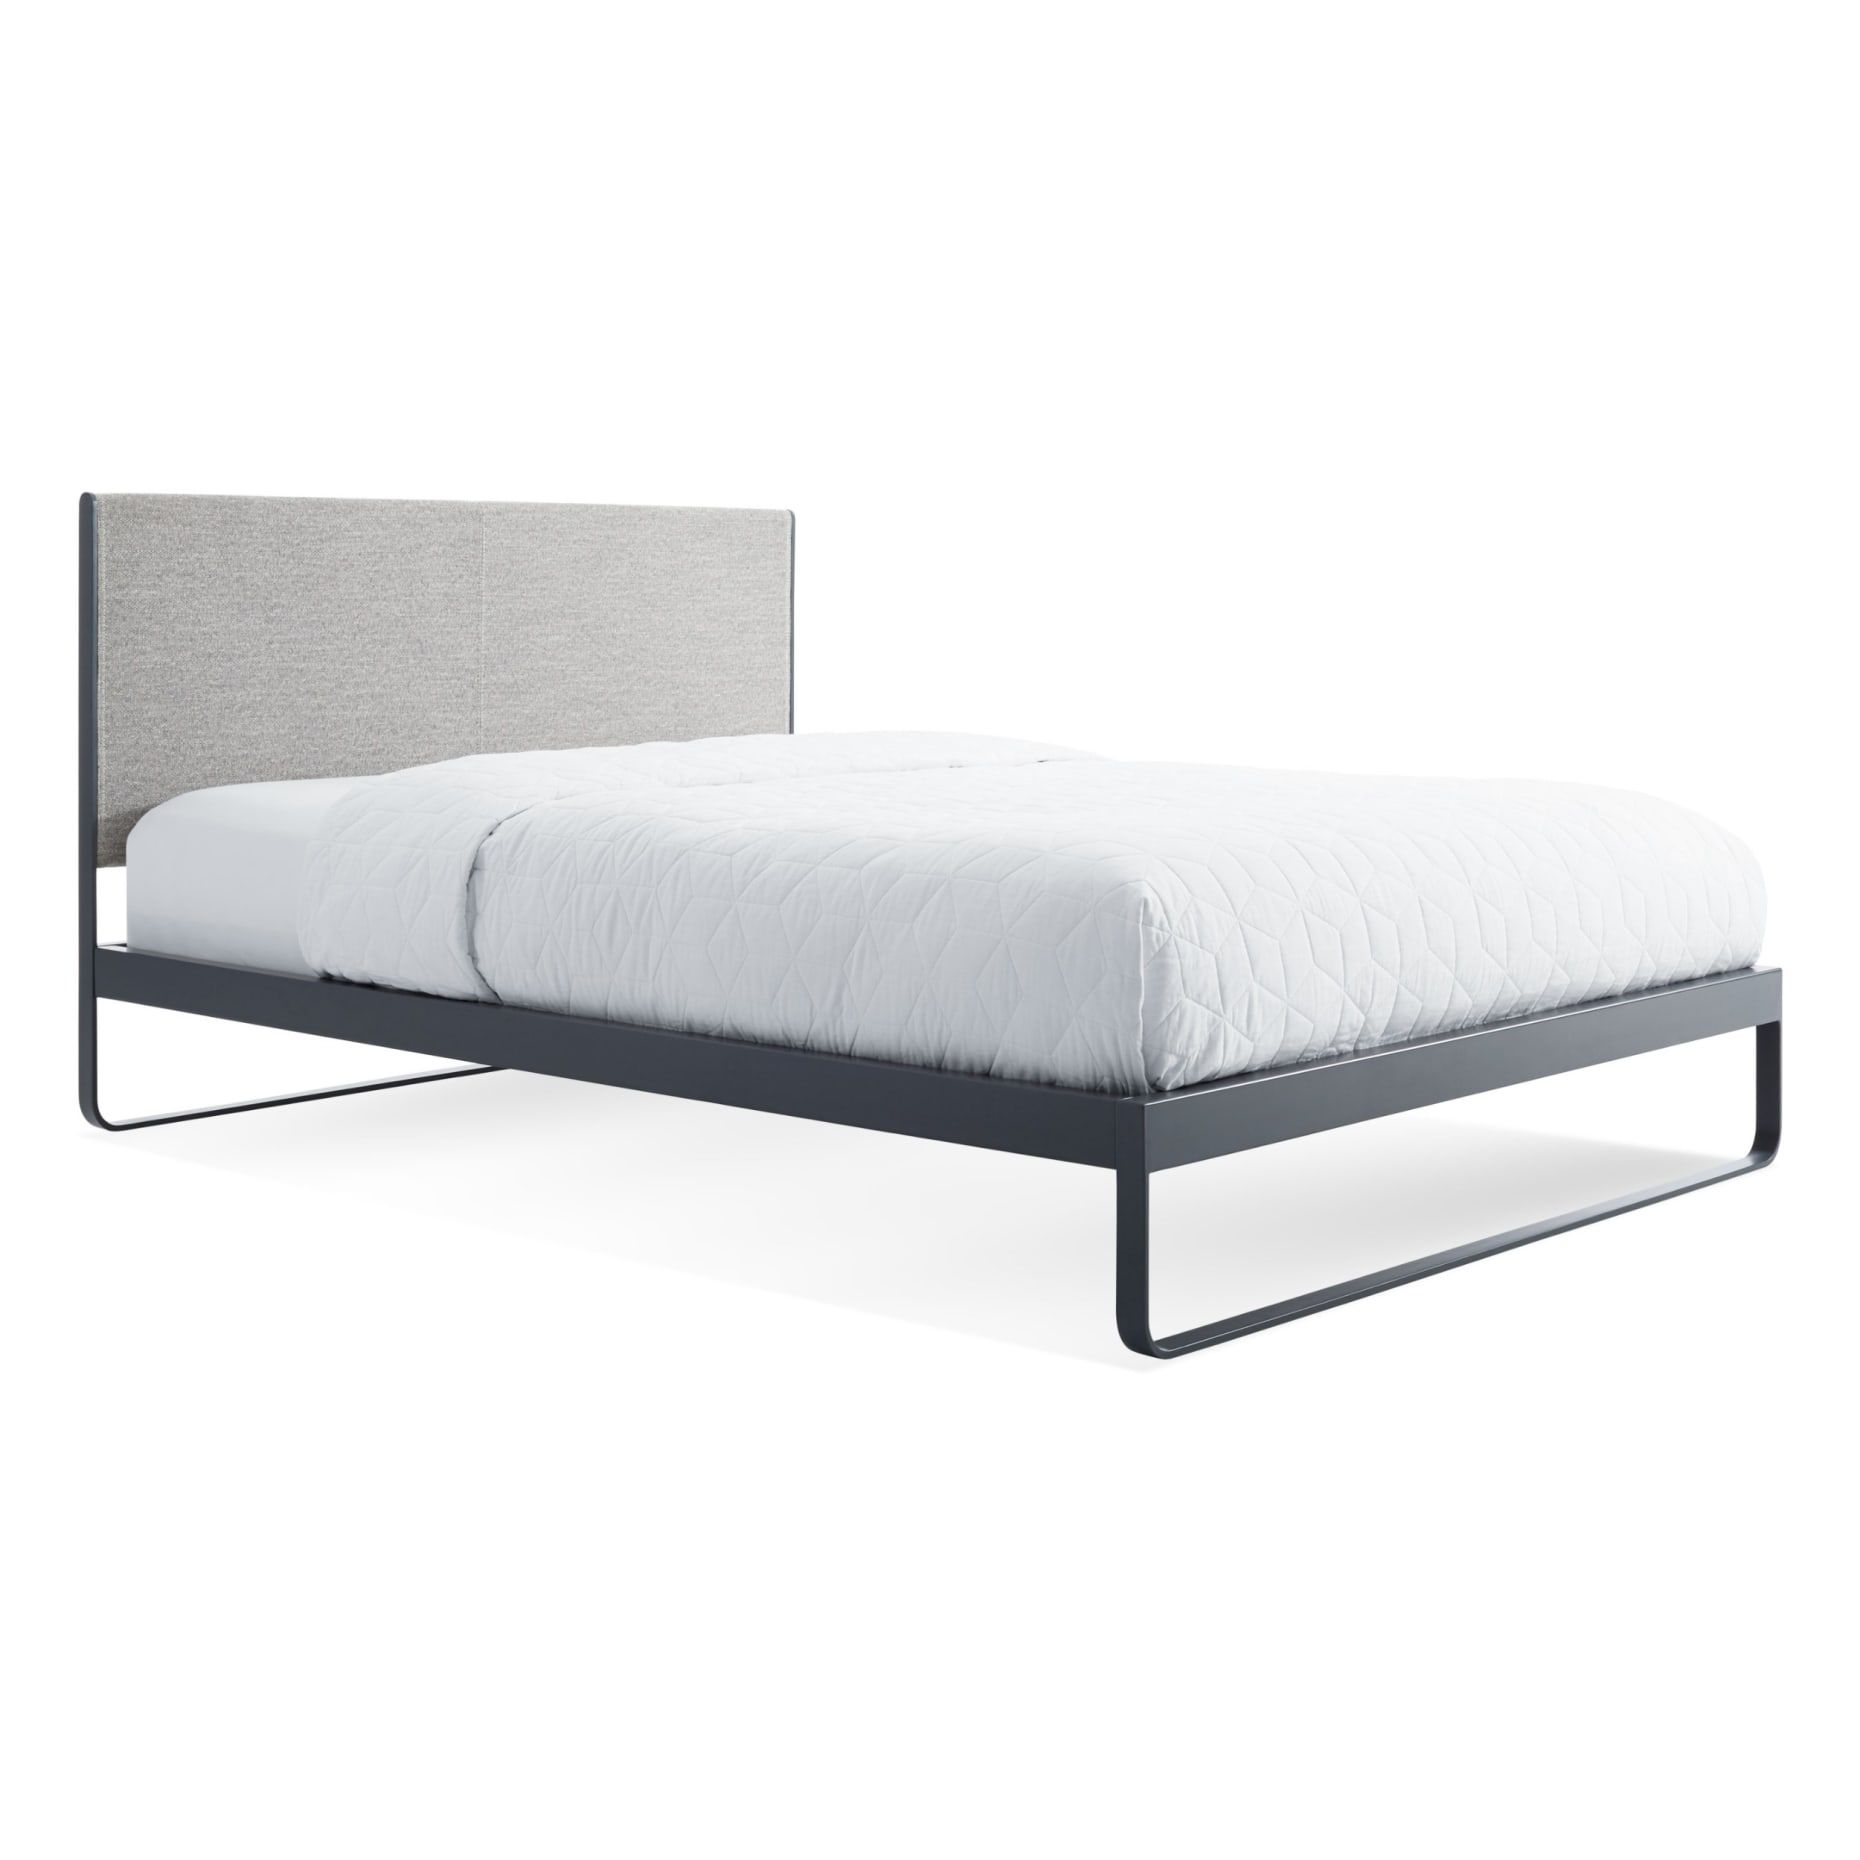 Me Time Queen Bed Modern Bed Bed Bed Frame Sizes